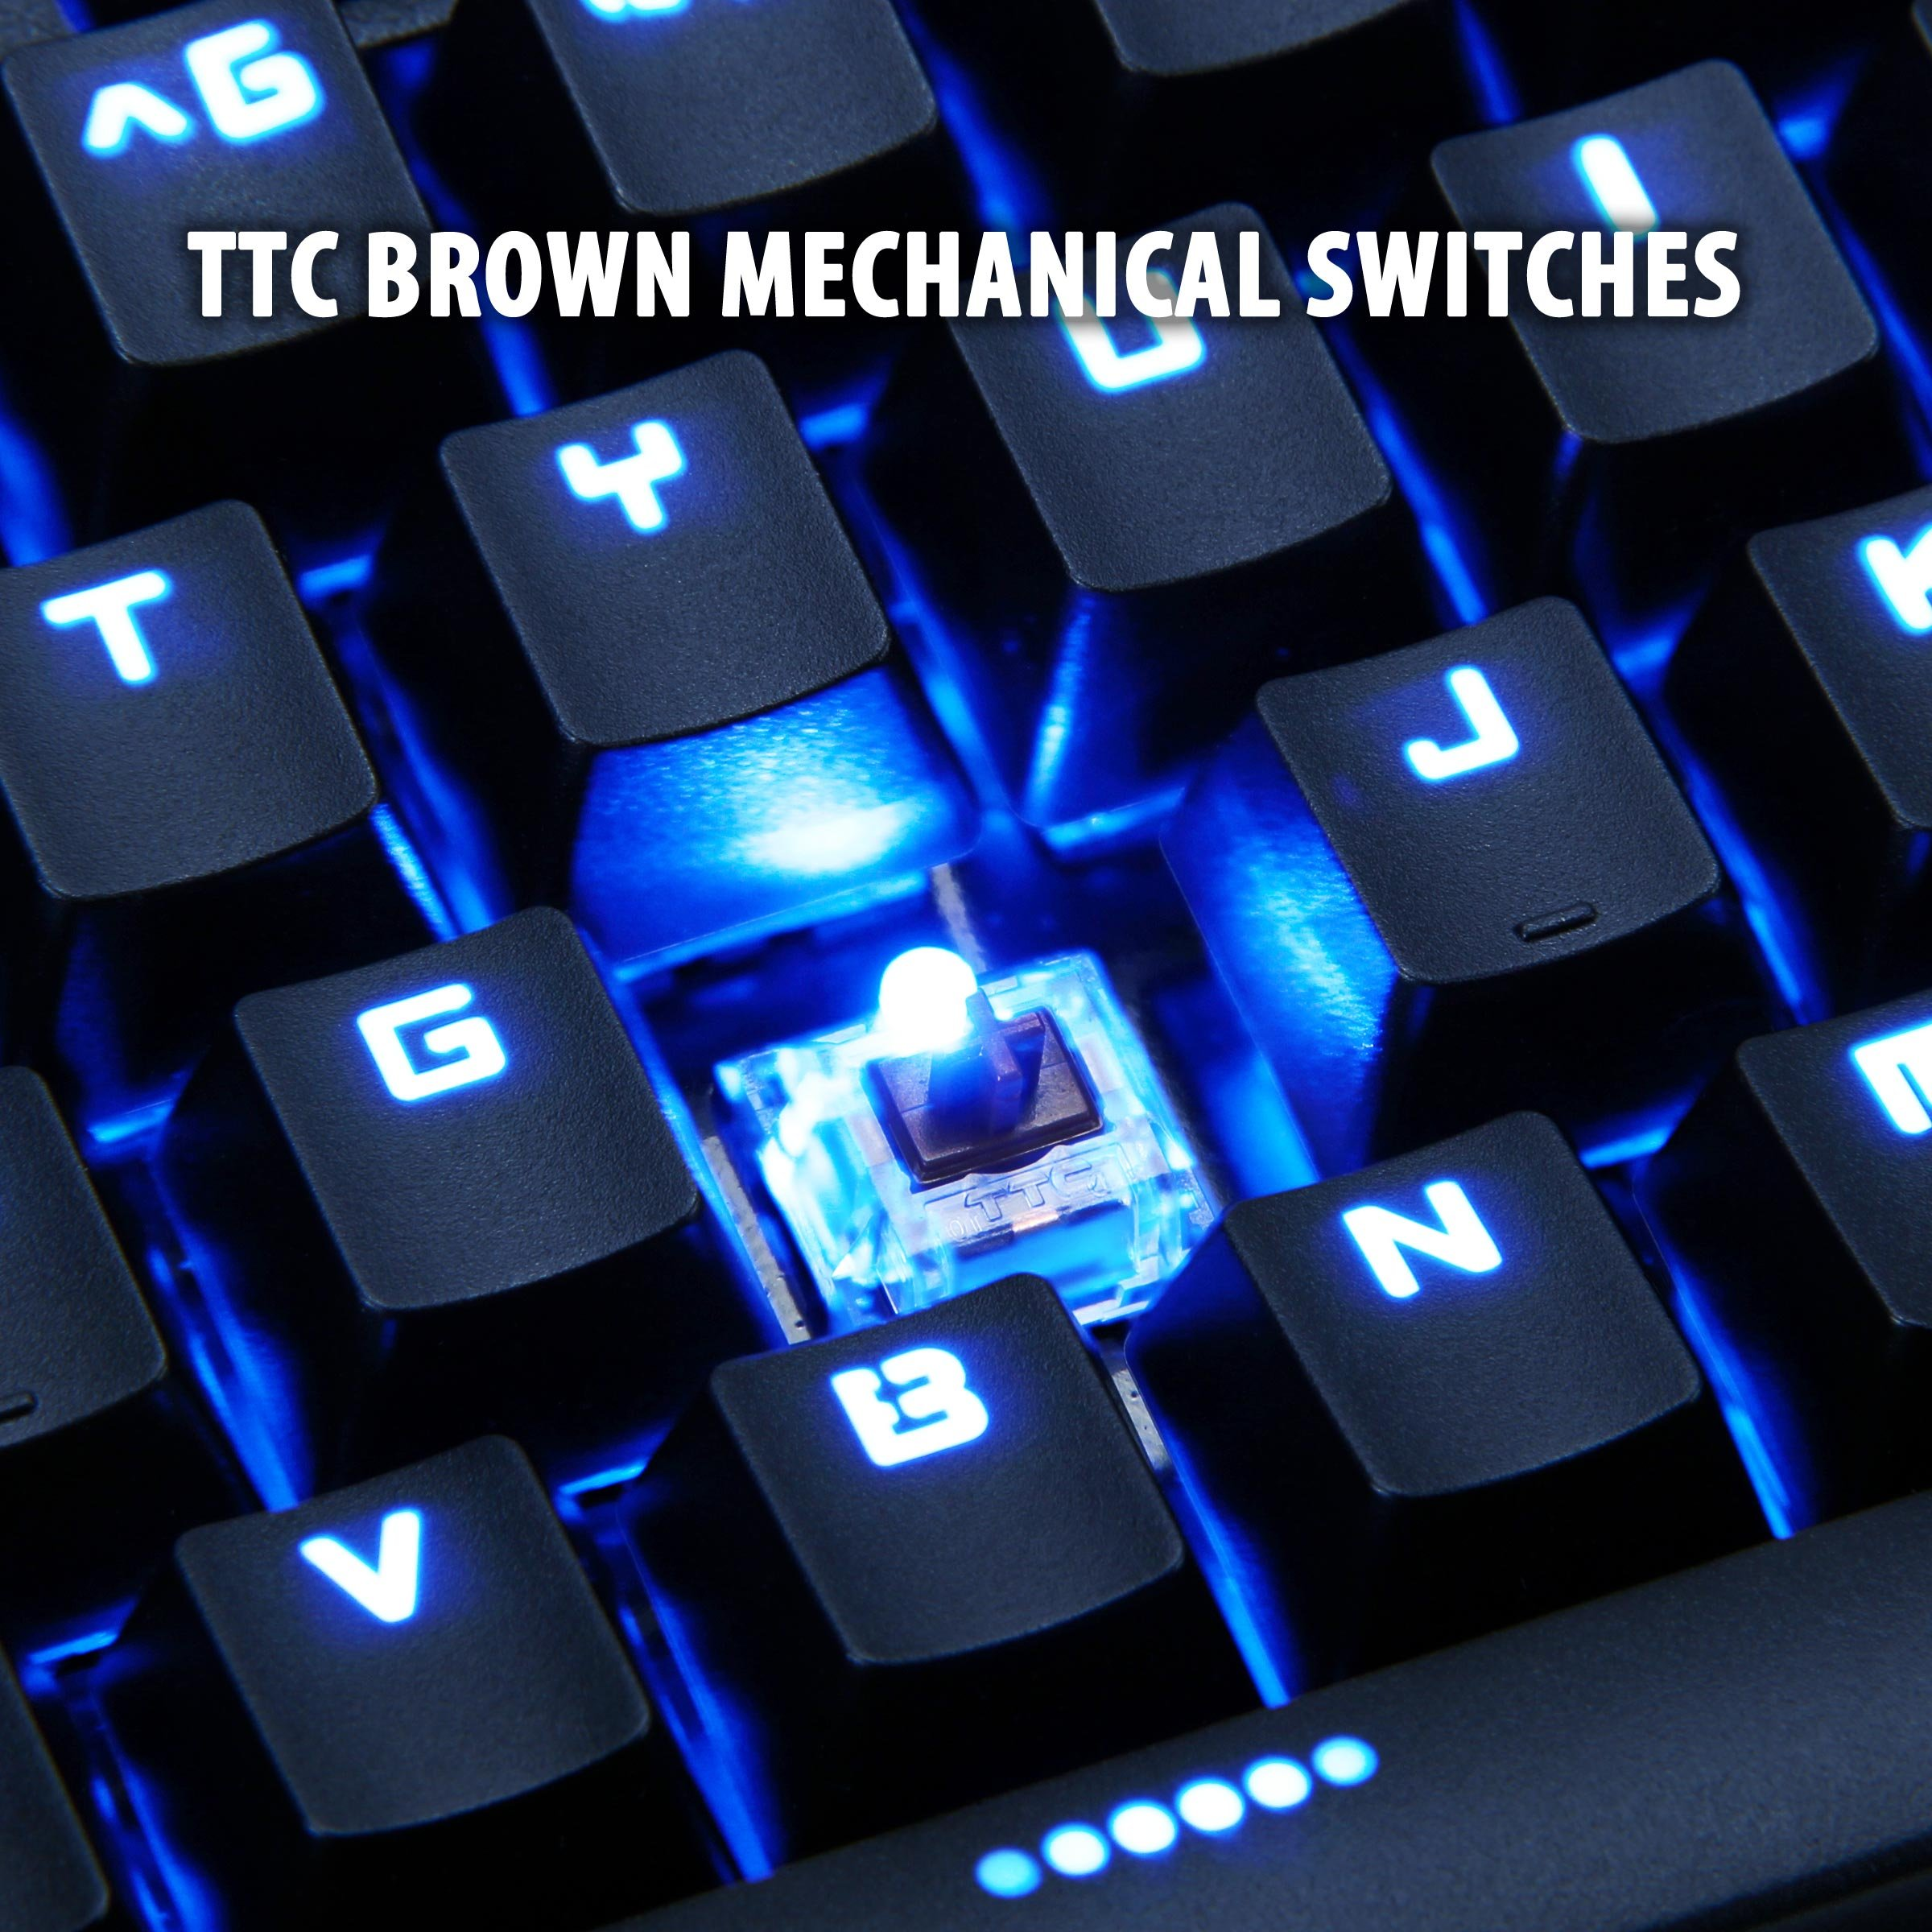 ENHANCE GX-K5 FPS Mechanical Gaming Keyboard with Blue LED Backlighting & TTC Brown Tactile Switches – Great for Counter-Strike: Global Offensive , Overwatch , Call of Duty: Black Ops III & More Games by ENHANCE (Image #4)